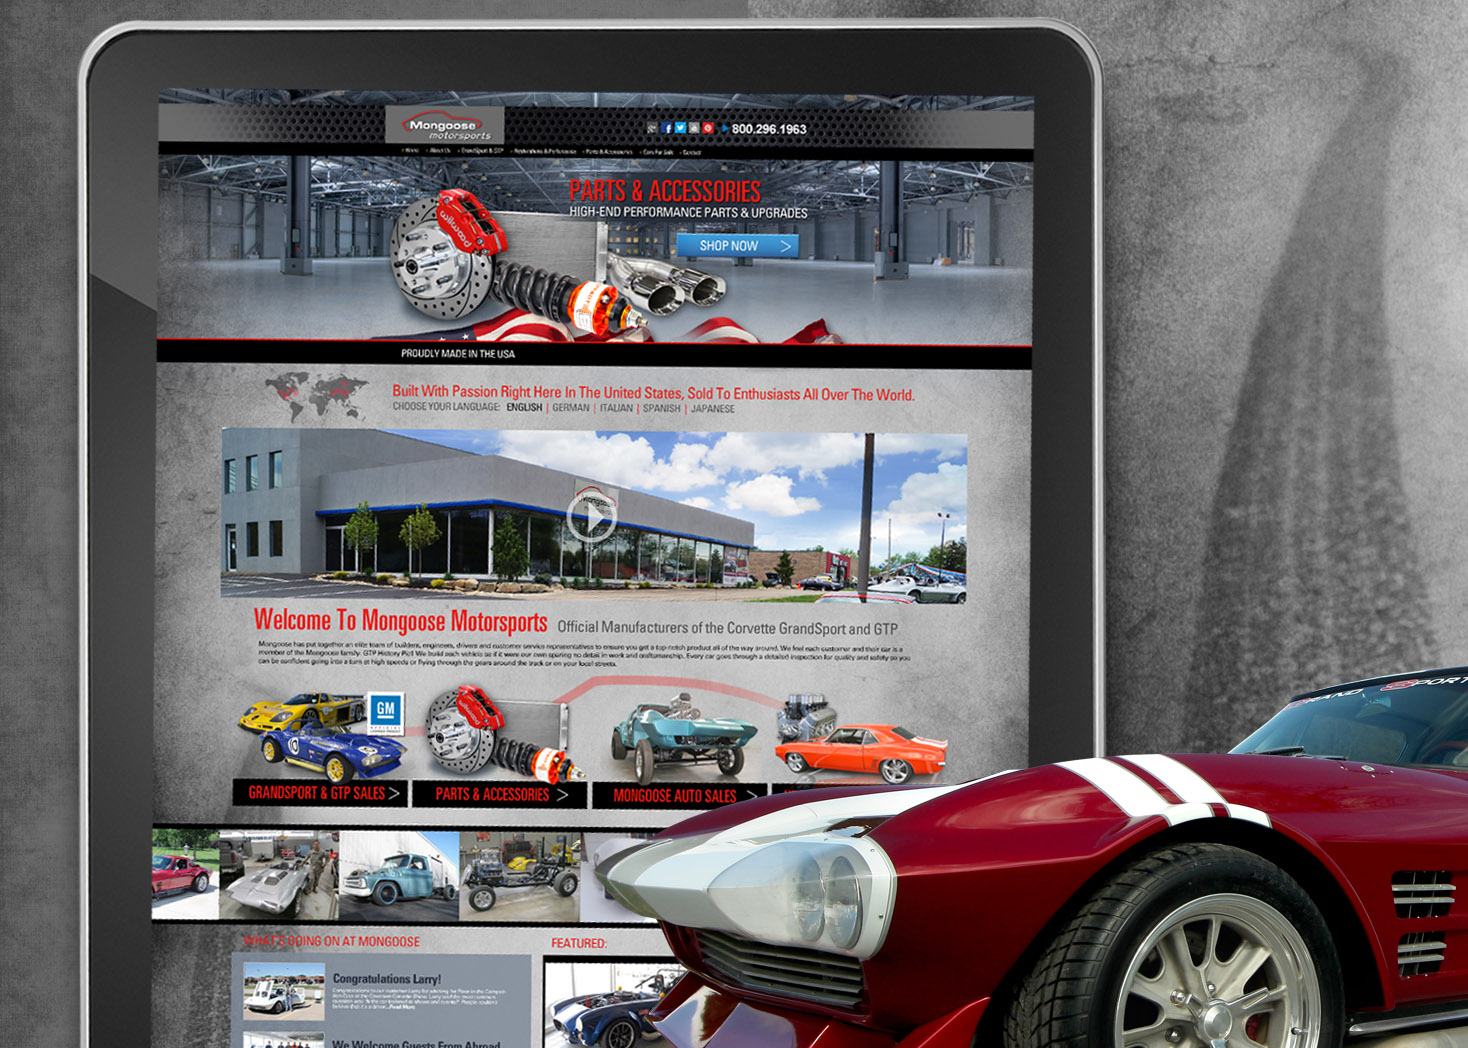 Mongoose Motorsports Website Design 2.0 - Lehman Design